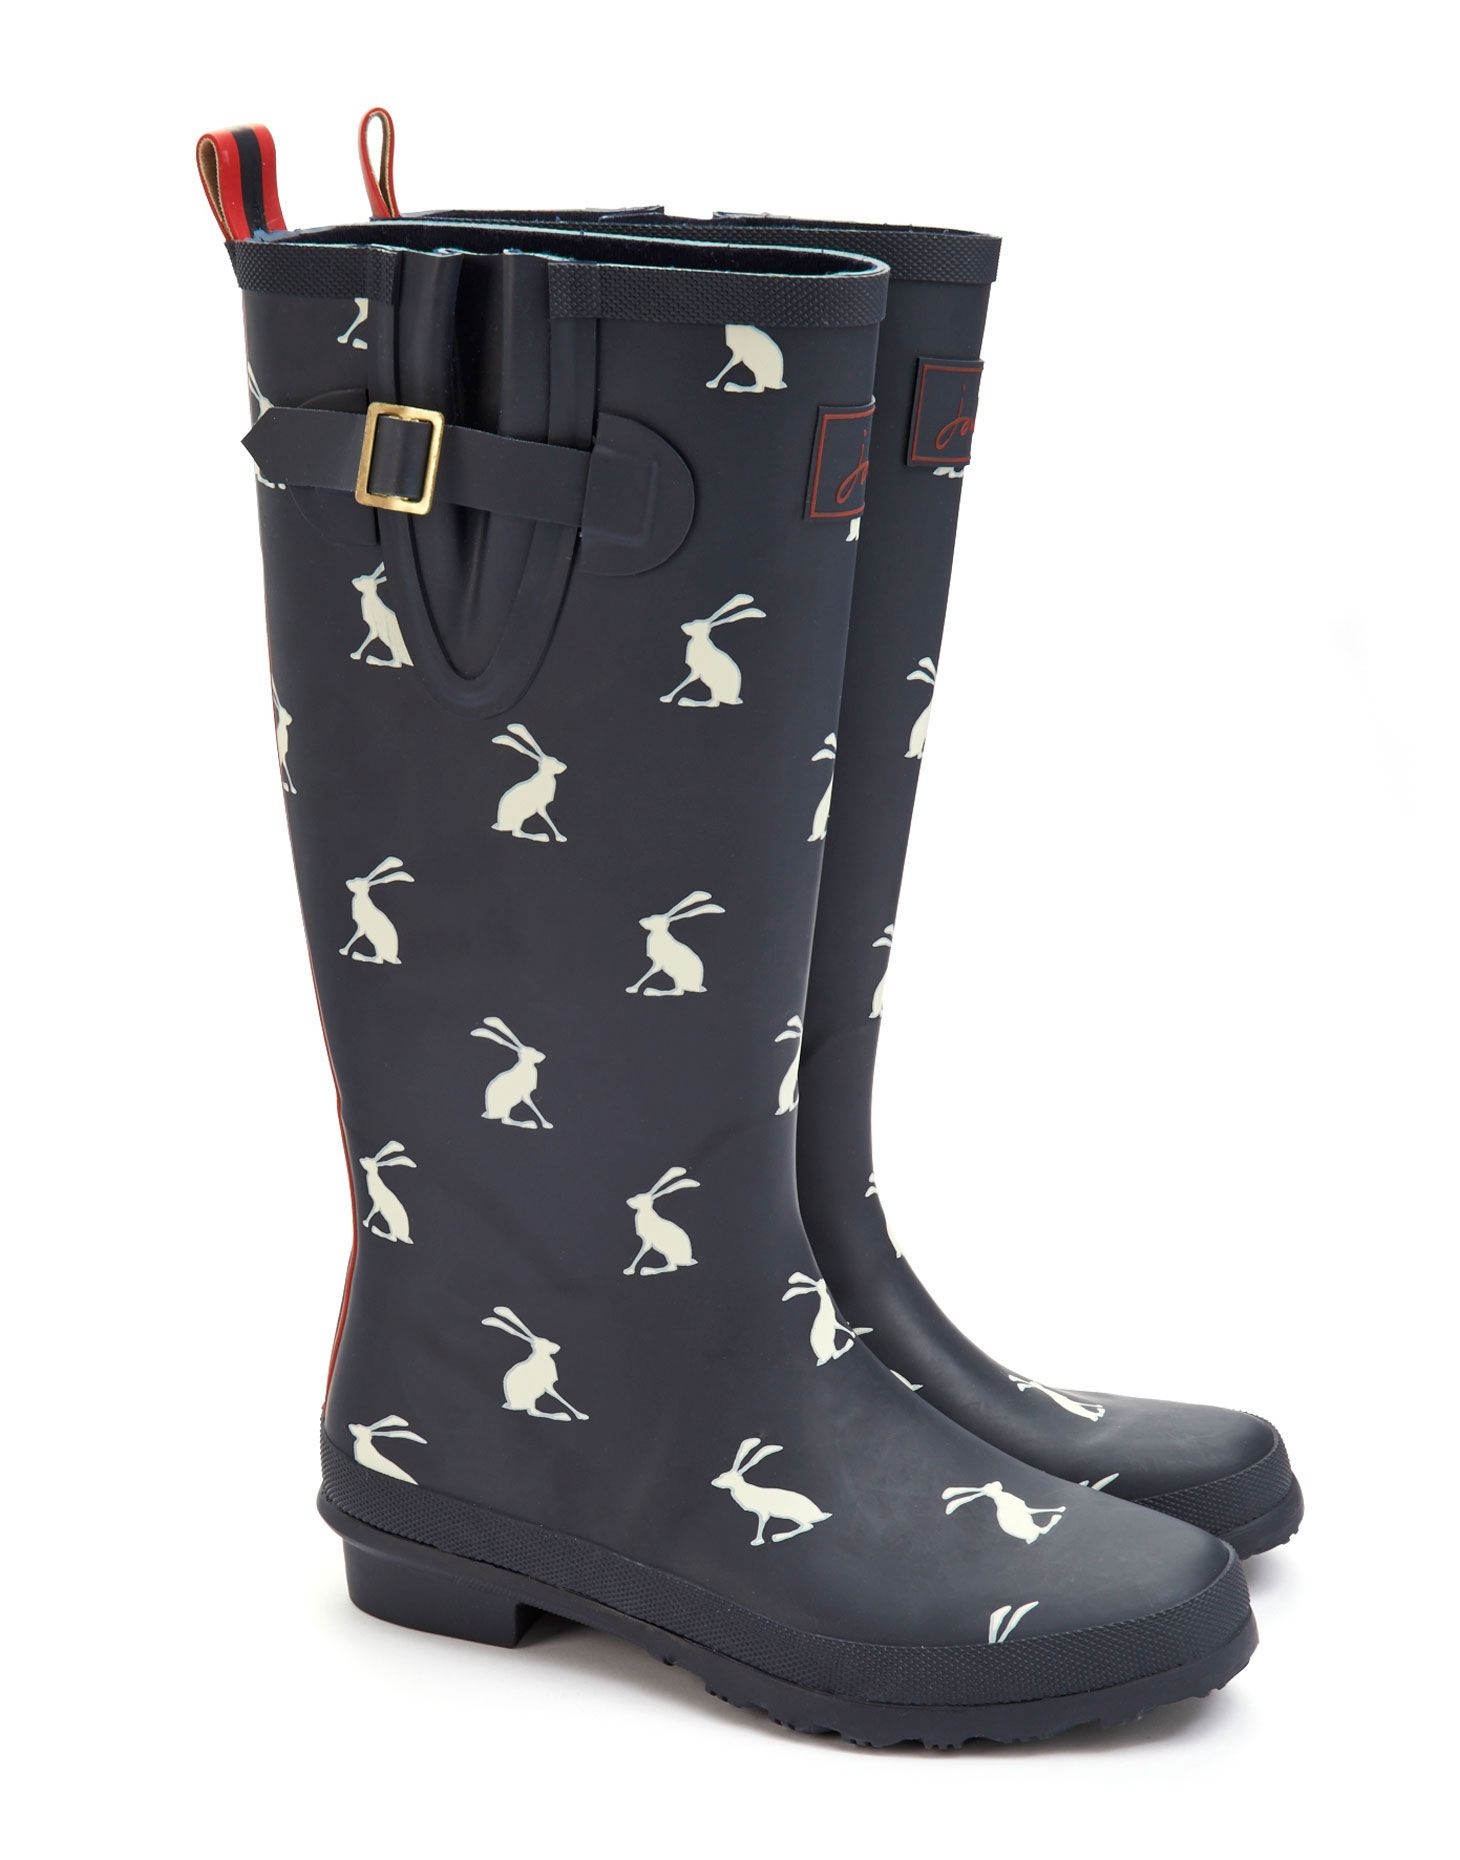 Joules Womens Printed Welly, Navy. Make a splash in style with this classic  Joules